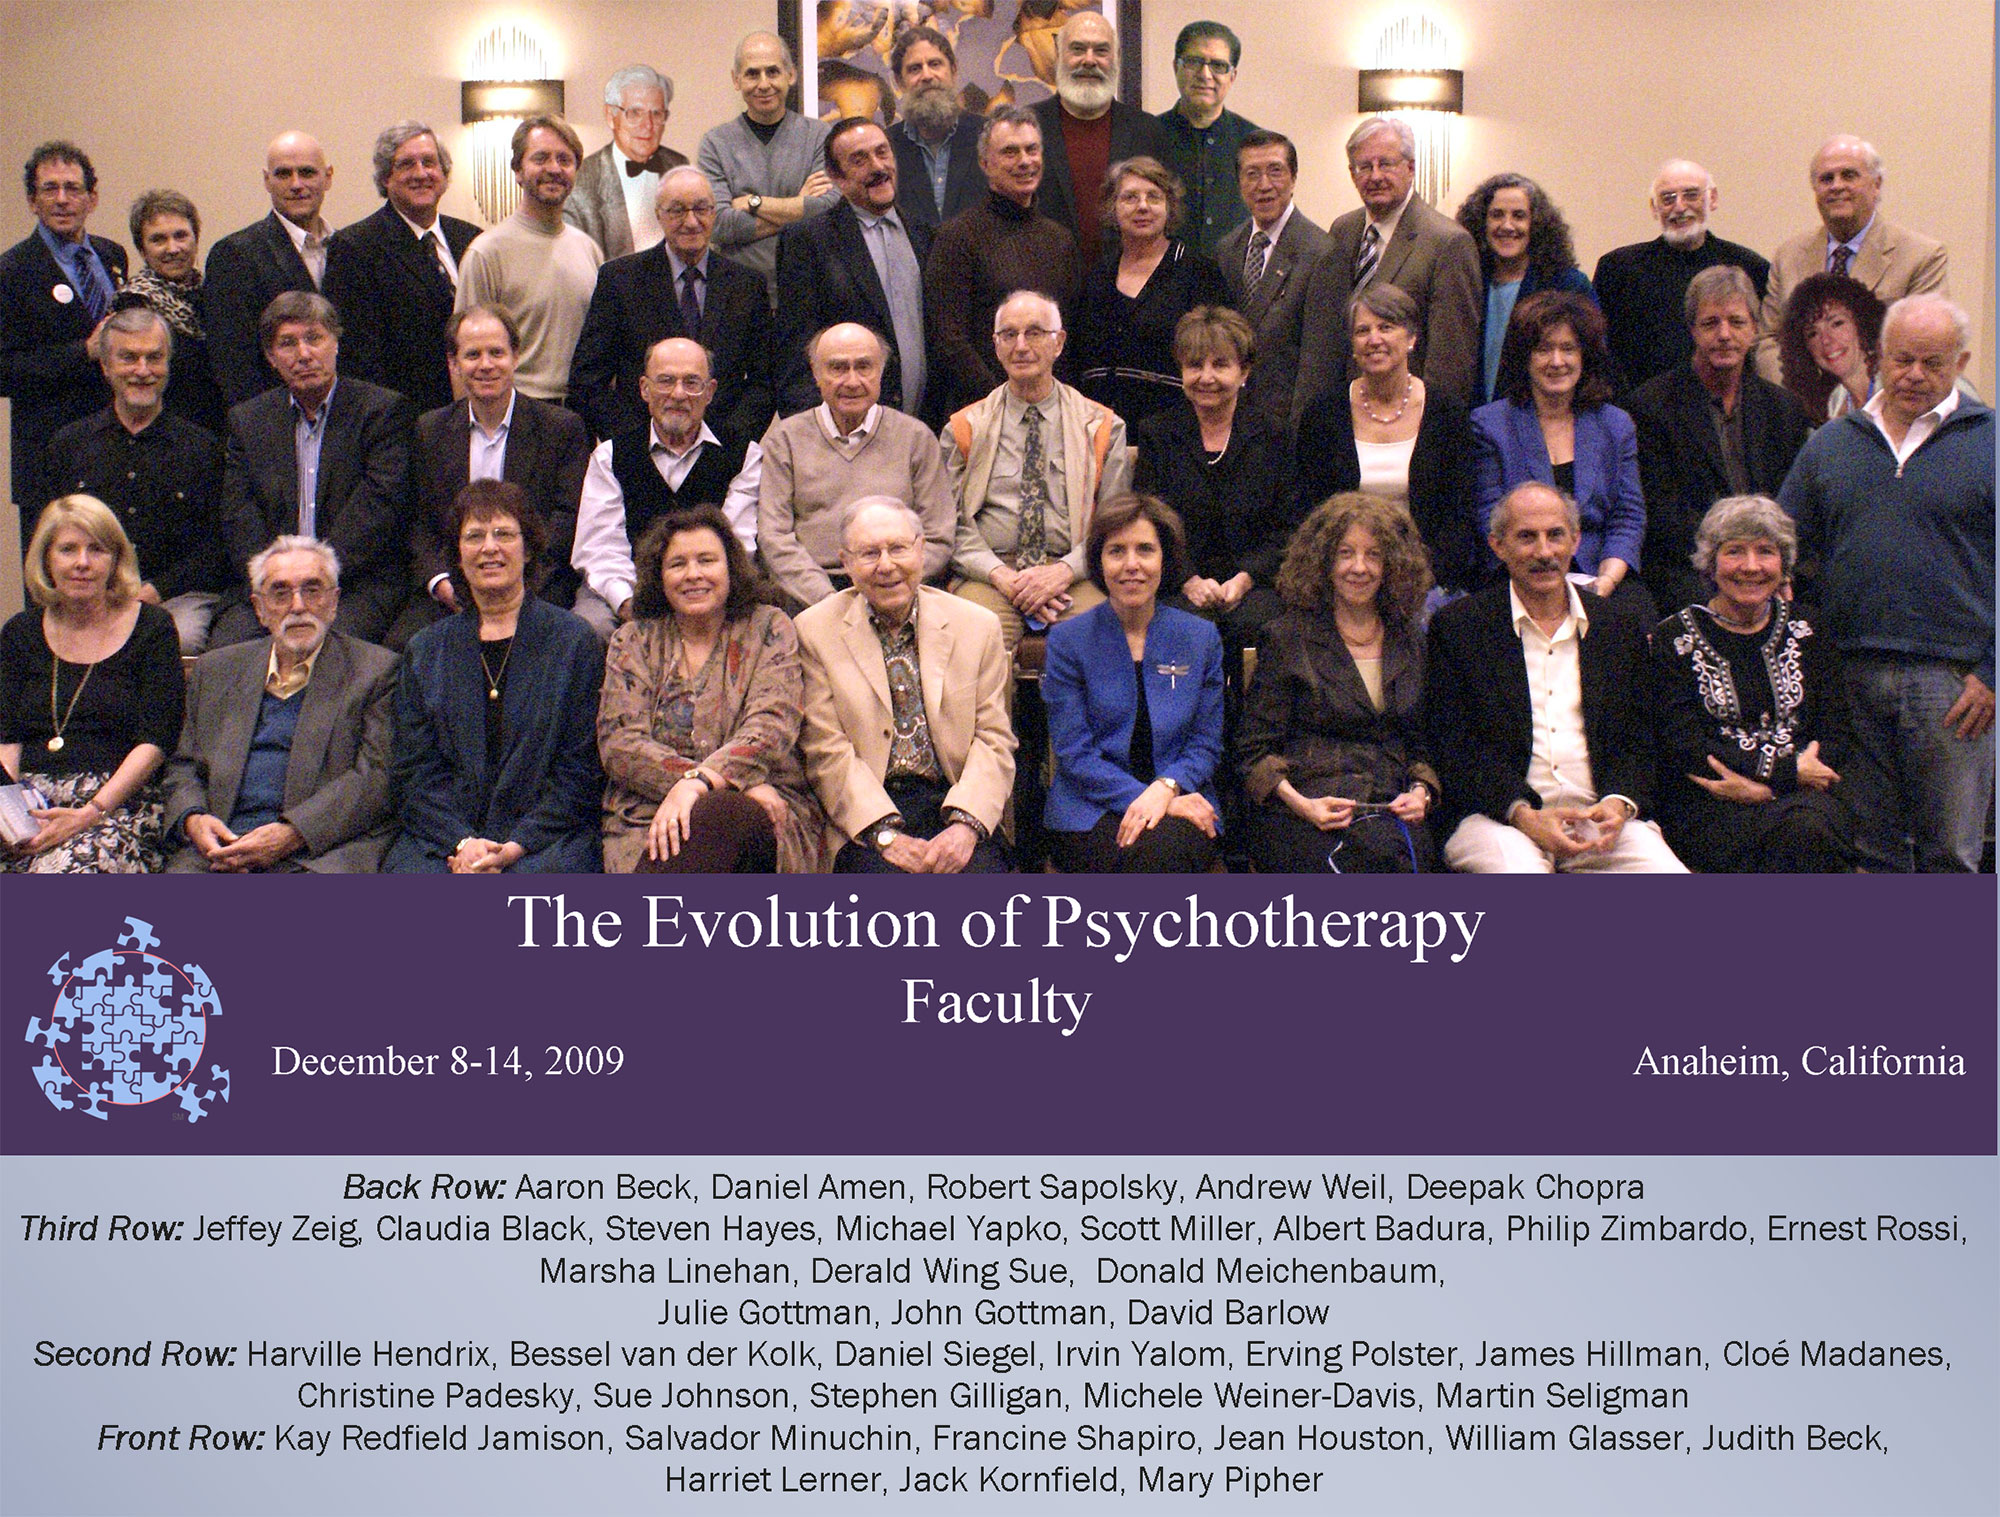 Evolution 2009 Faculty Group Photo